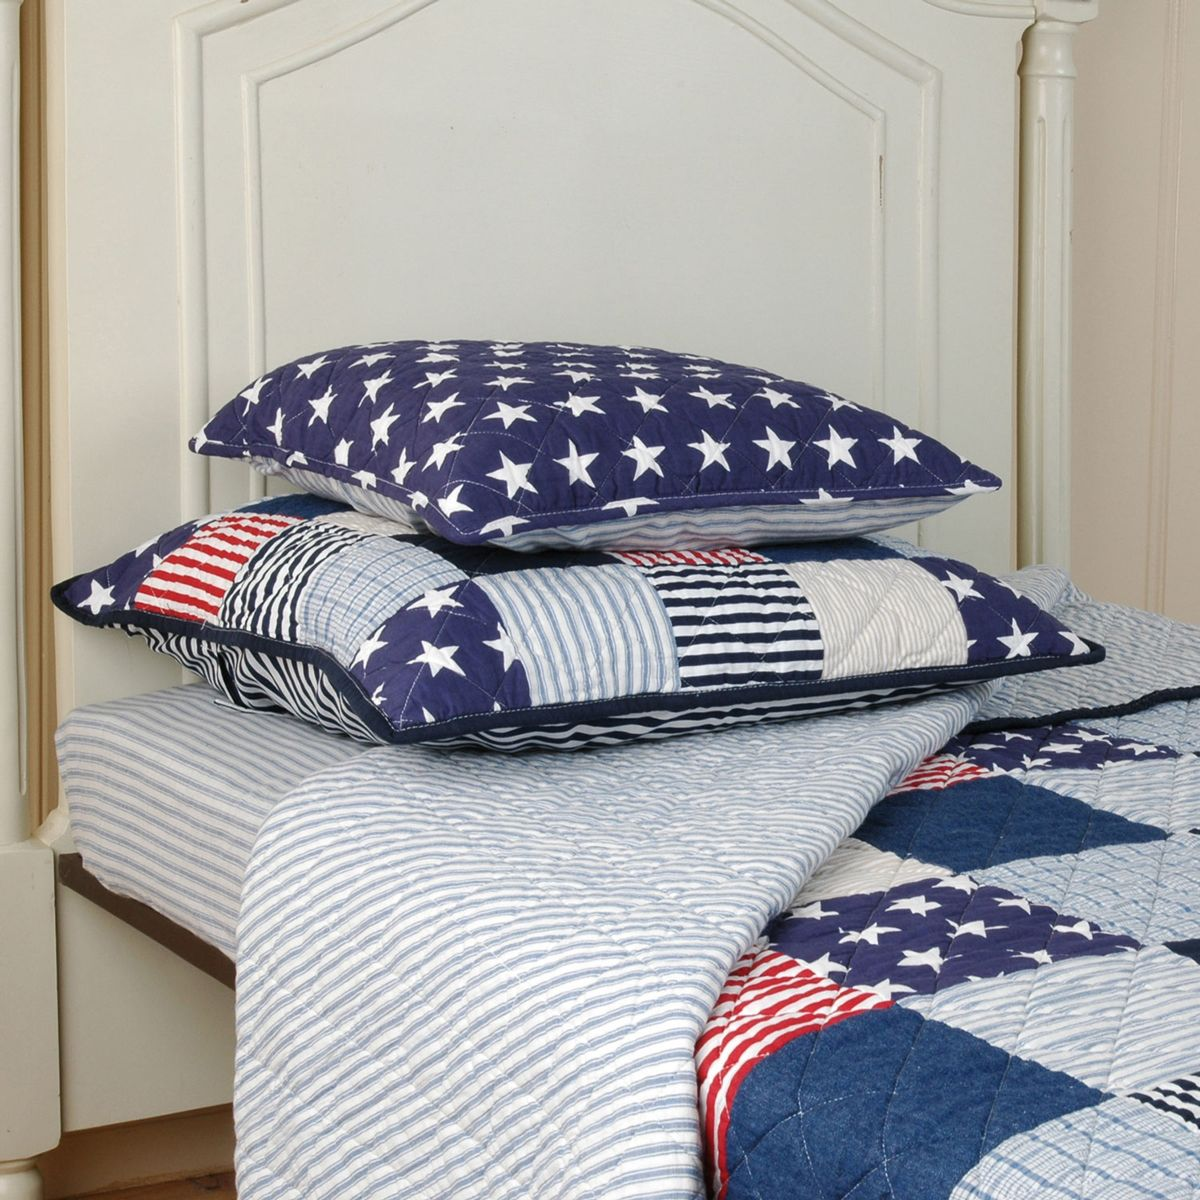 tagesdecke stars stripes quilt 140x220 von clayre eef kaufen. Black Bedroom Furniture Sets. Home Design Ideas